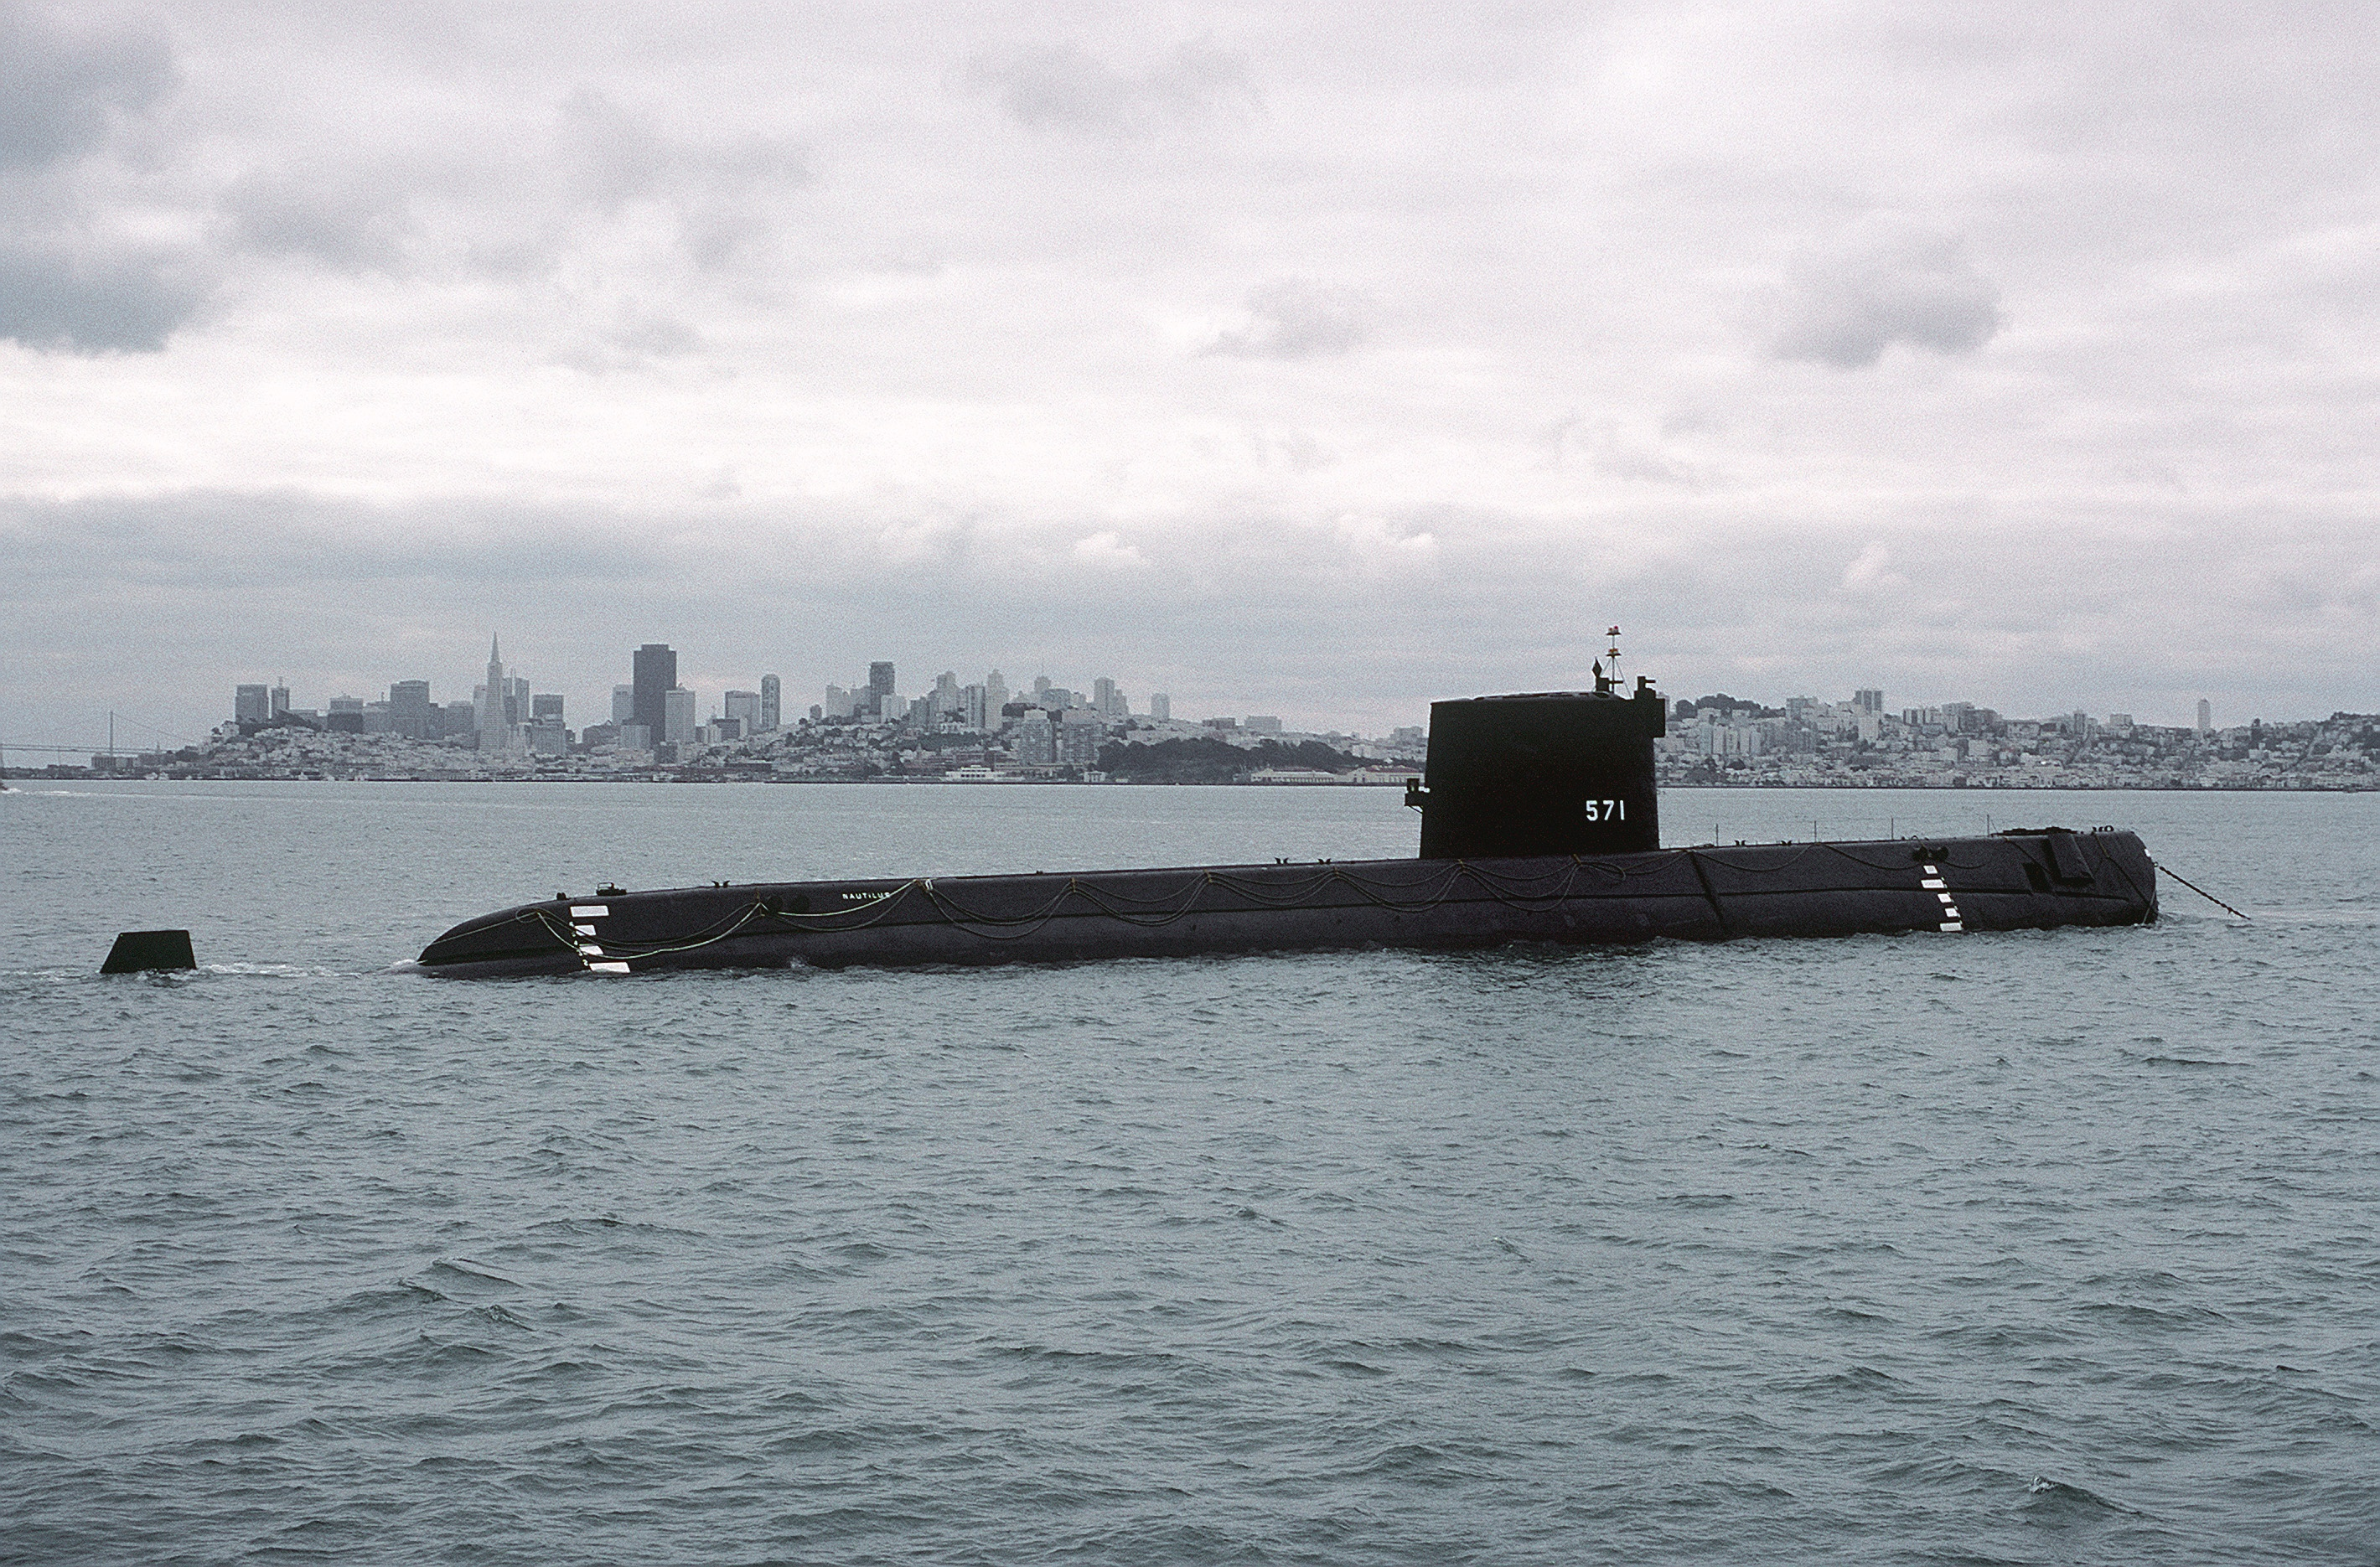 A starboard side view of the nuclear-powered attack submarine ex-USS Nautilus (SSN 571) with the city of San Francisco visible in the background. The Nautilus was being towed from Naval Shipyard Mare Island to Groton, Connecticut, where it became a museum.